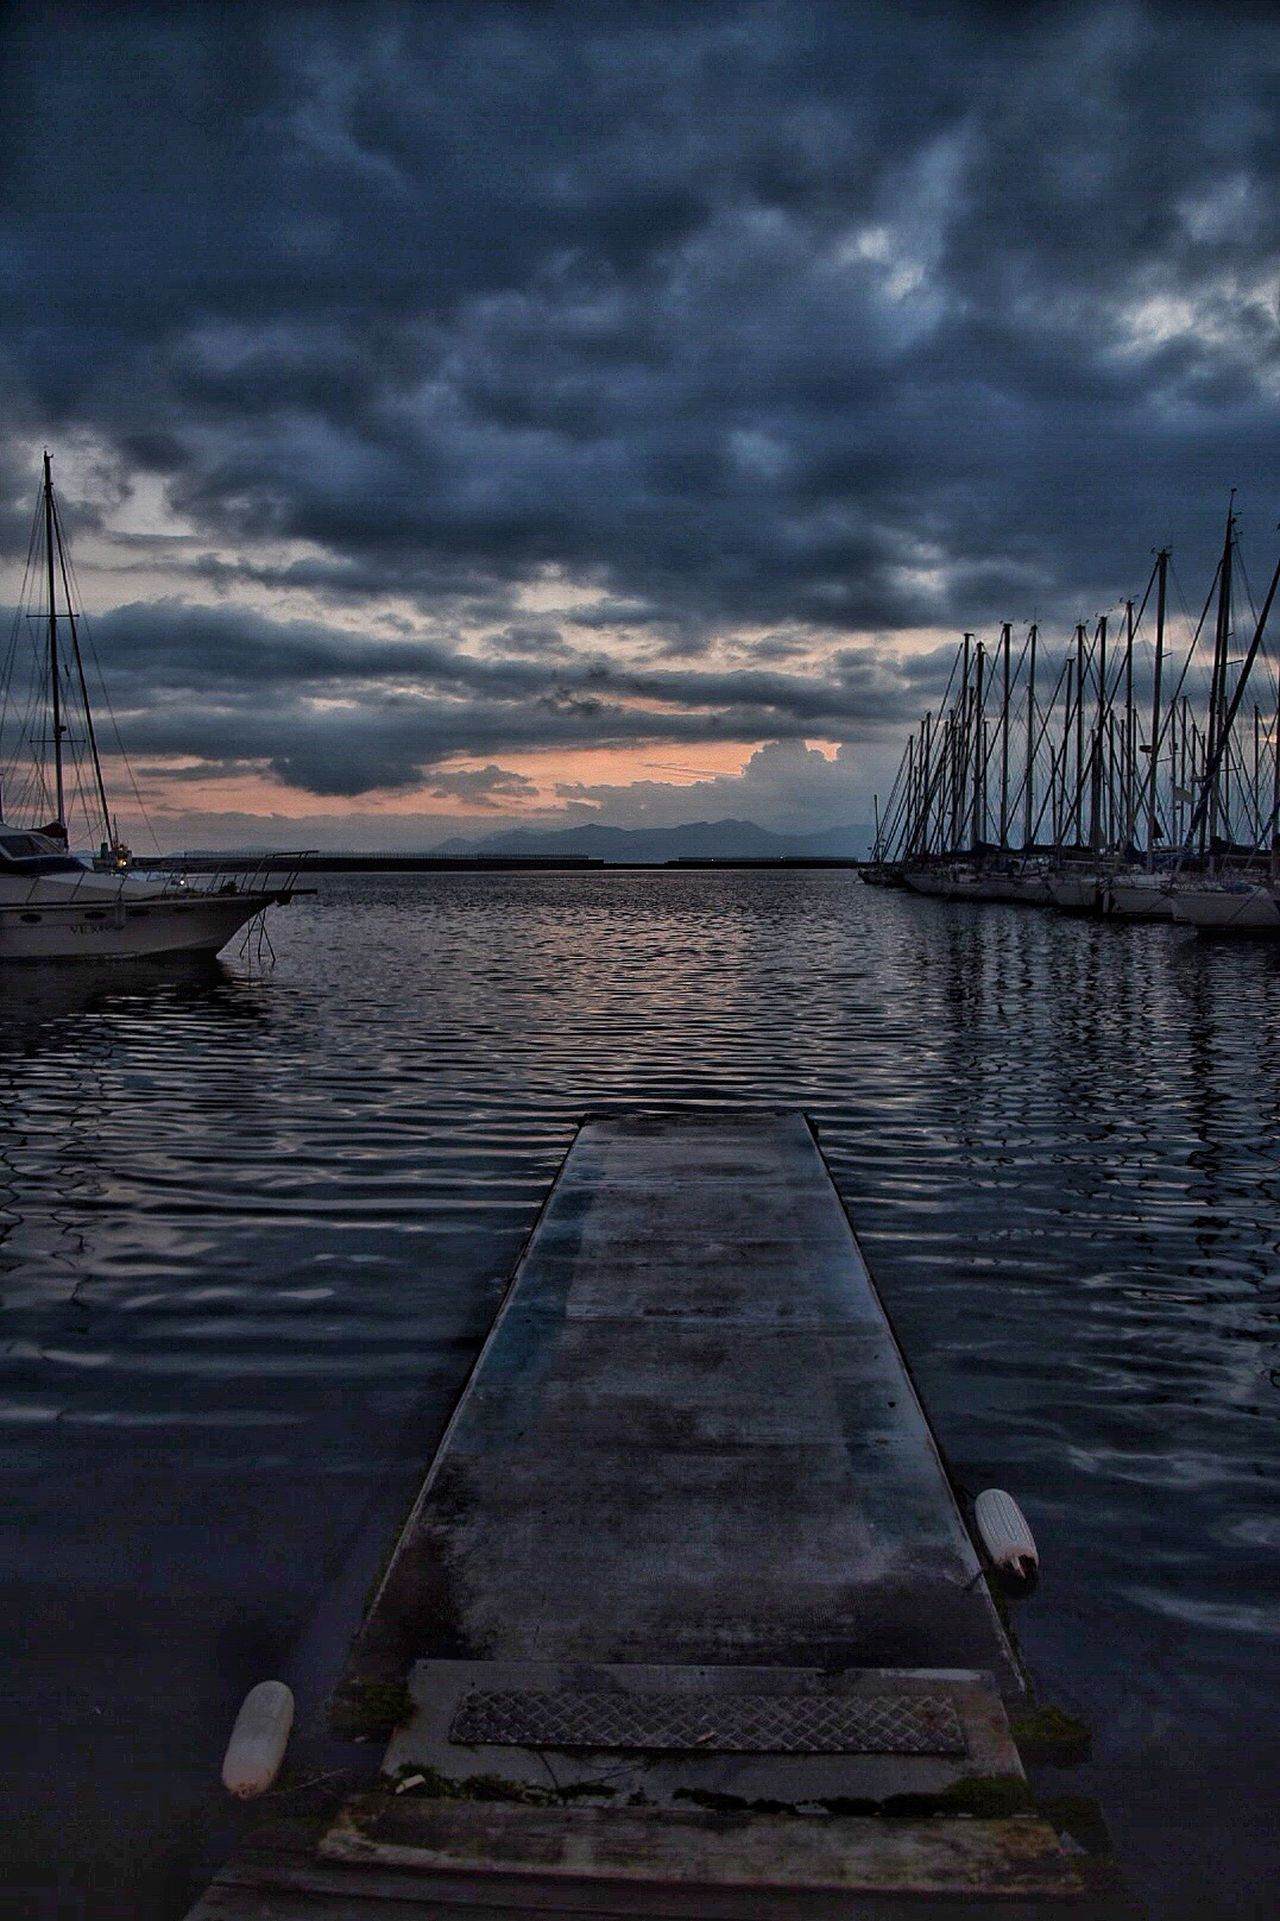 Sky Cloud - Sky Water Sea No People Nature Beauty In Nature Outdoors Nautical Vessel Sailboat Day Sardinia Sardegna Italy  Tramonti Sardegna Paradise ❤ EyeEm Best Shots EyeEm Gallery EyeEmBestPics Eyem Best Shots Nature_collection Cagliari, Sardinia Dramatic Sky Cagliari Urban City Horizon Over Water Sunset Tramonti_italiani Nature